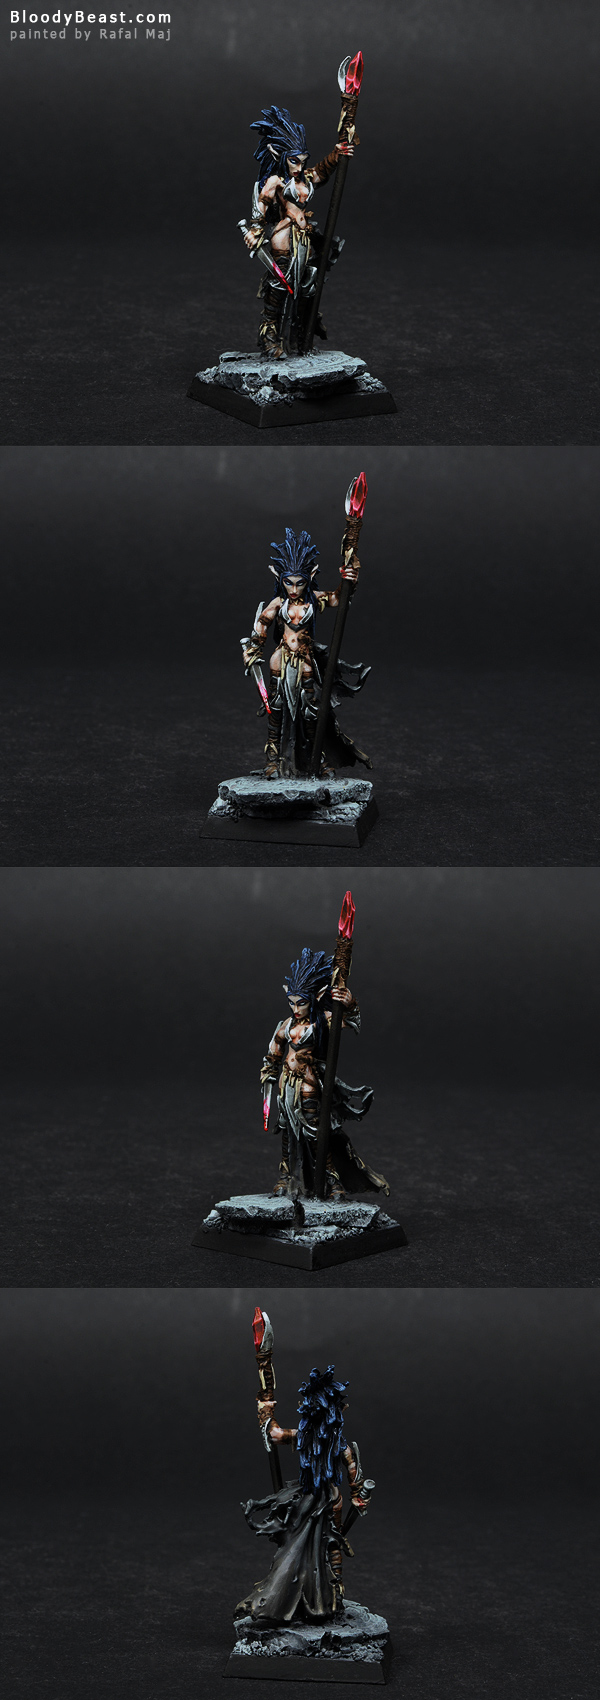 Darkreach Liela Mordollwen Sorceress painted by Rafal Maj (BloodyBeast.com)